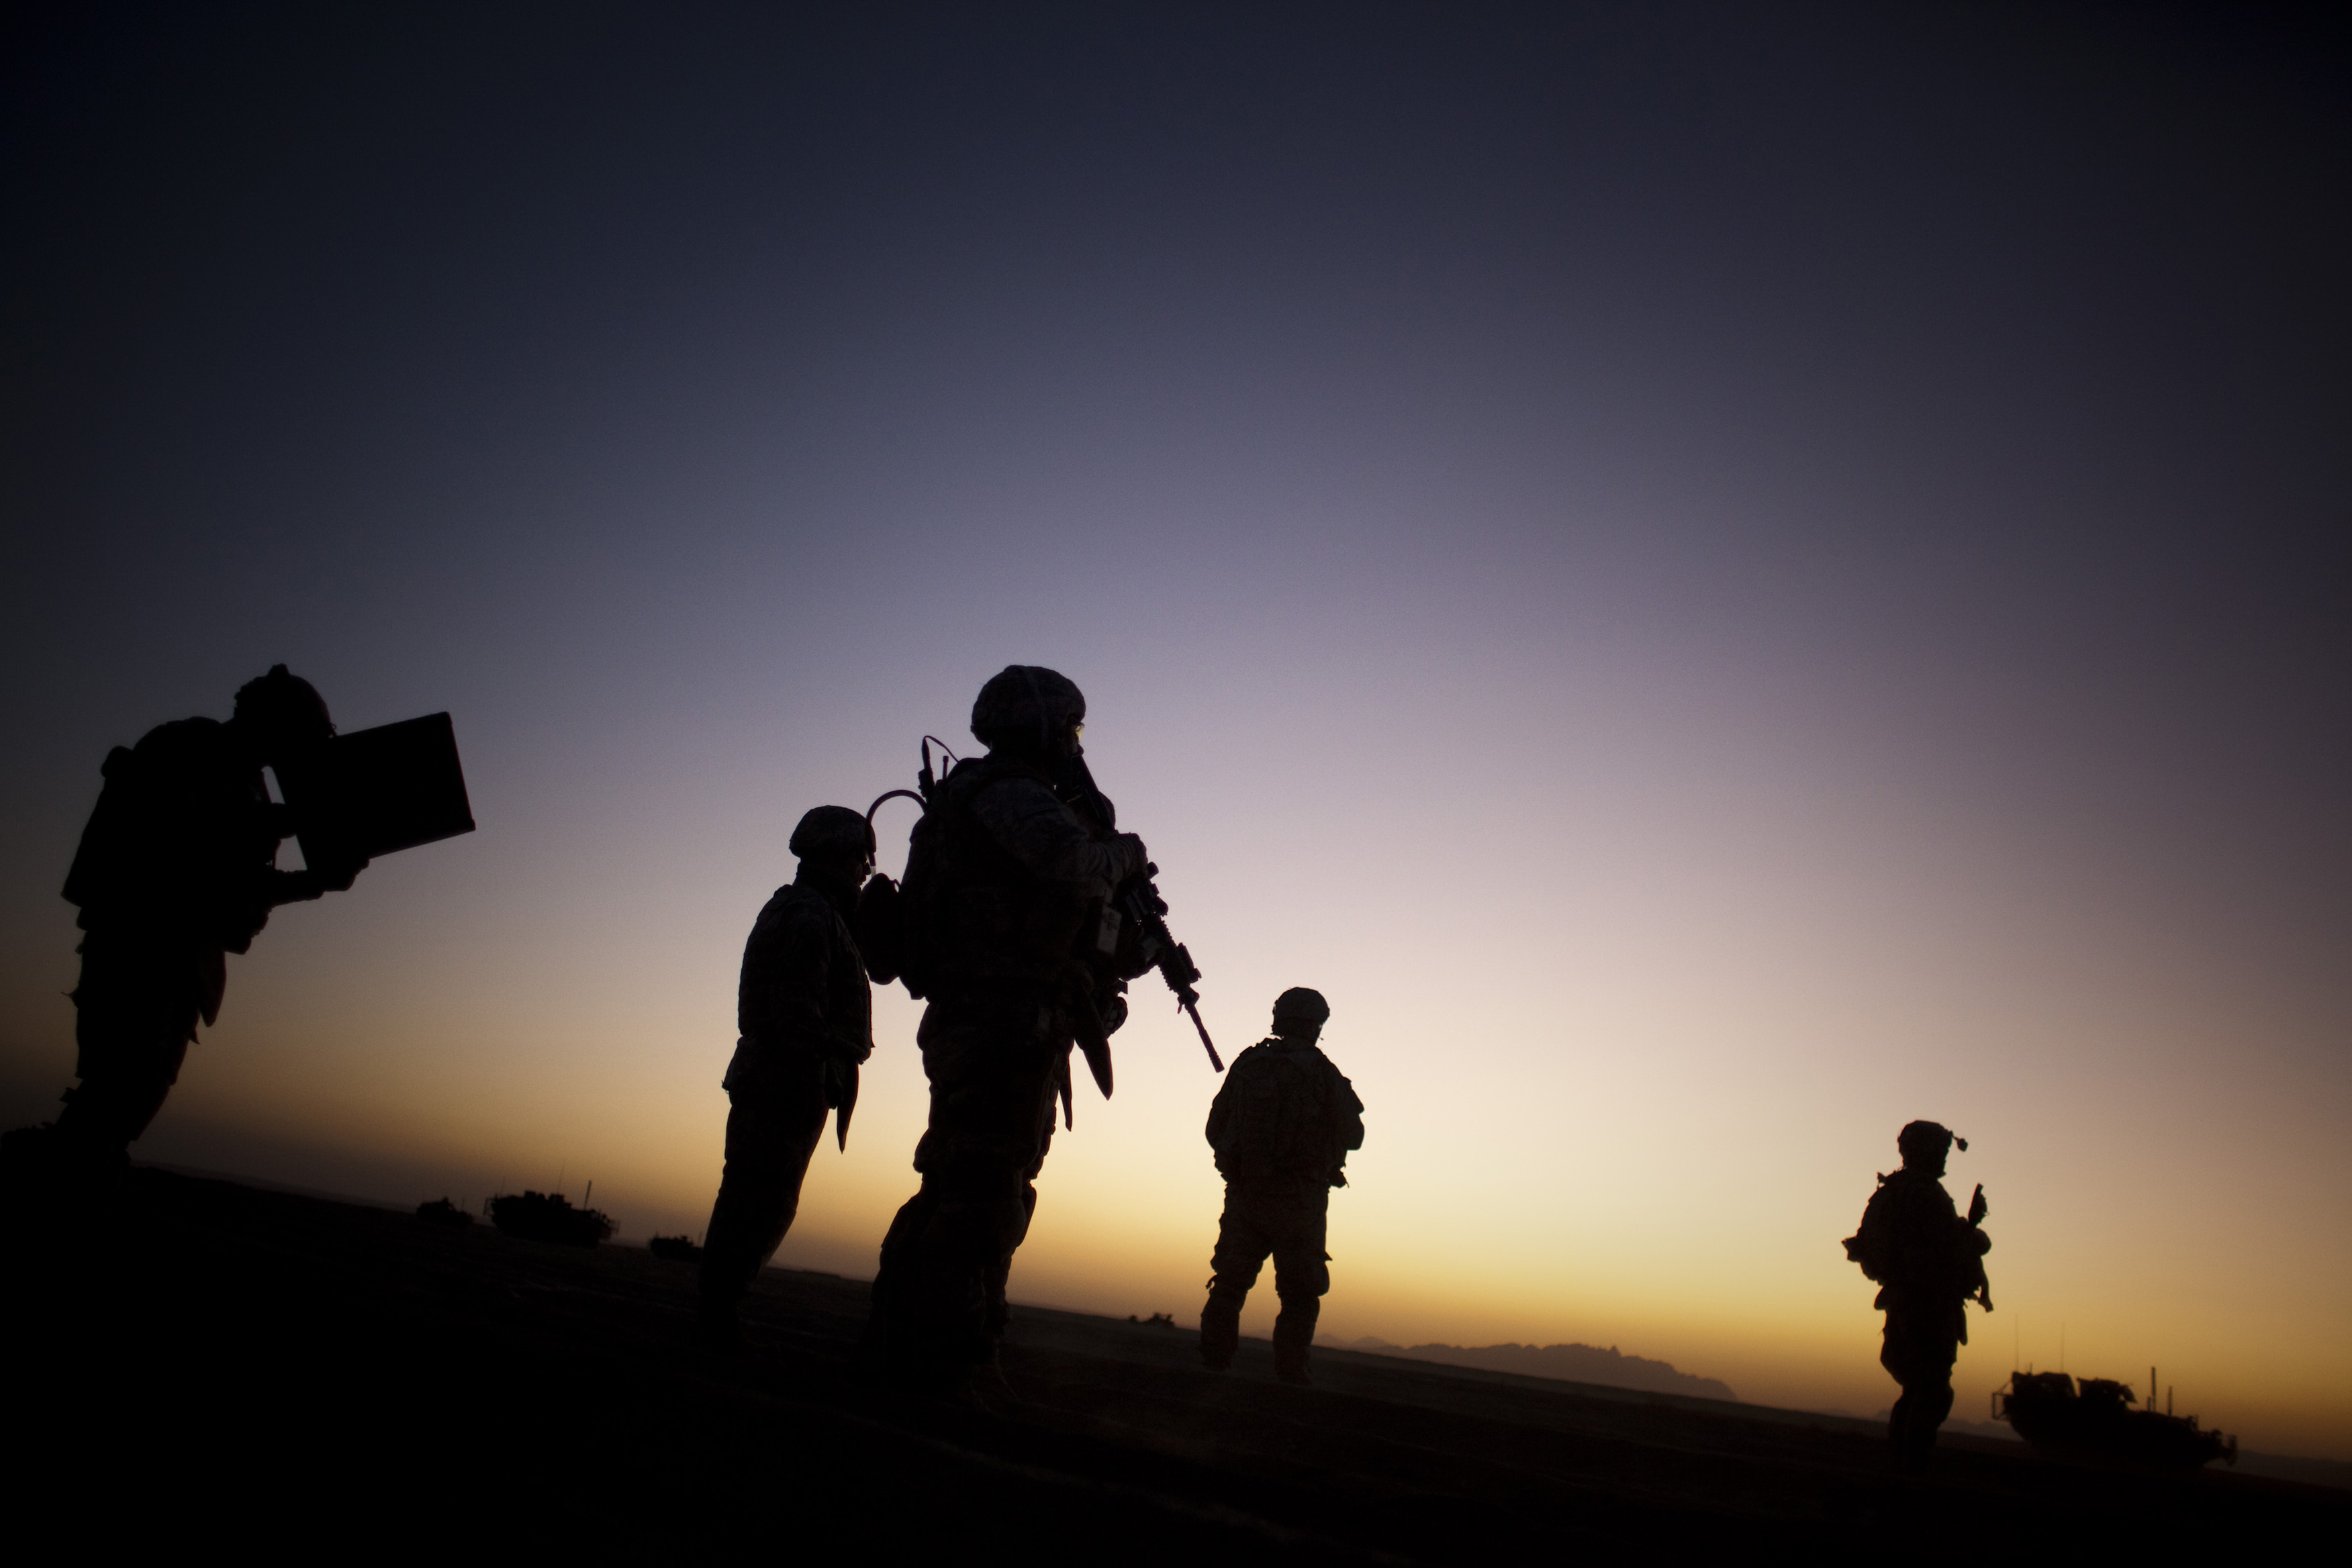 PTSD disability claims by vets tripled in the last decade